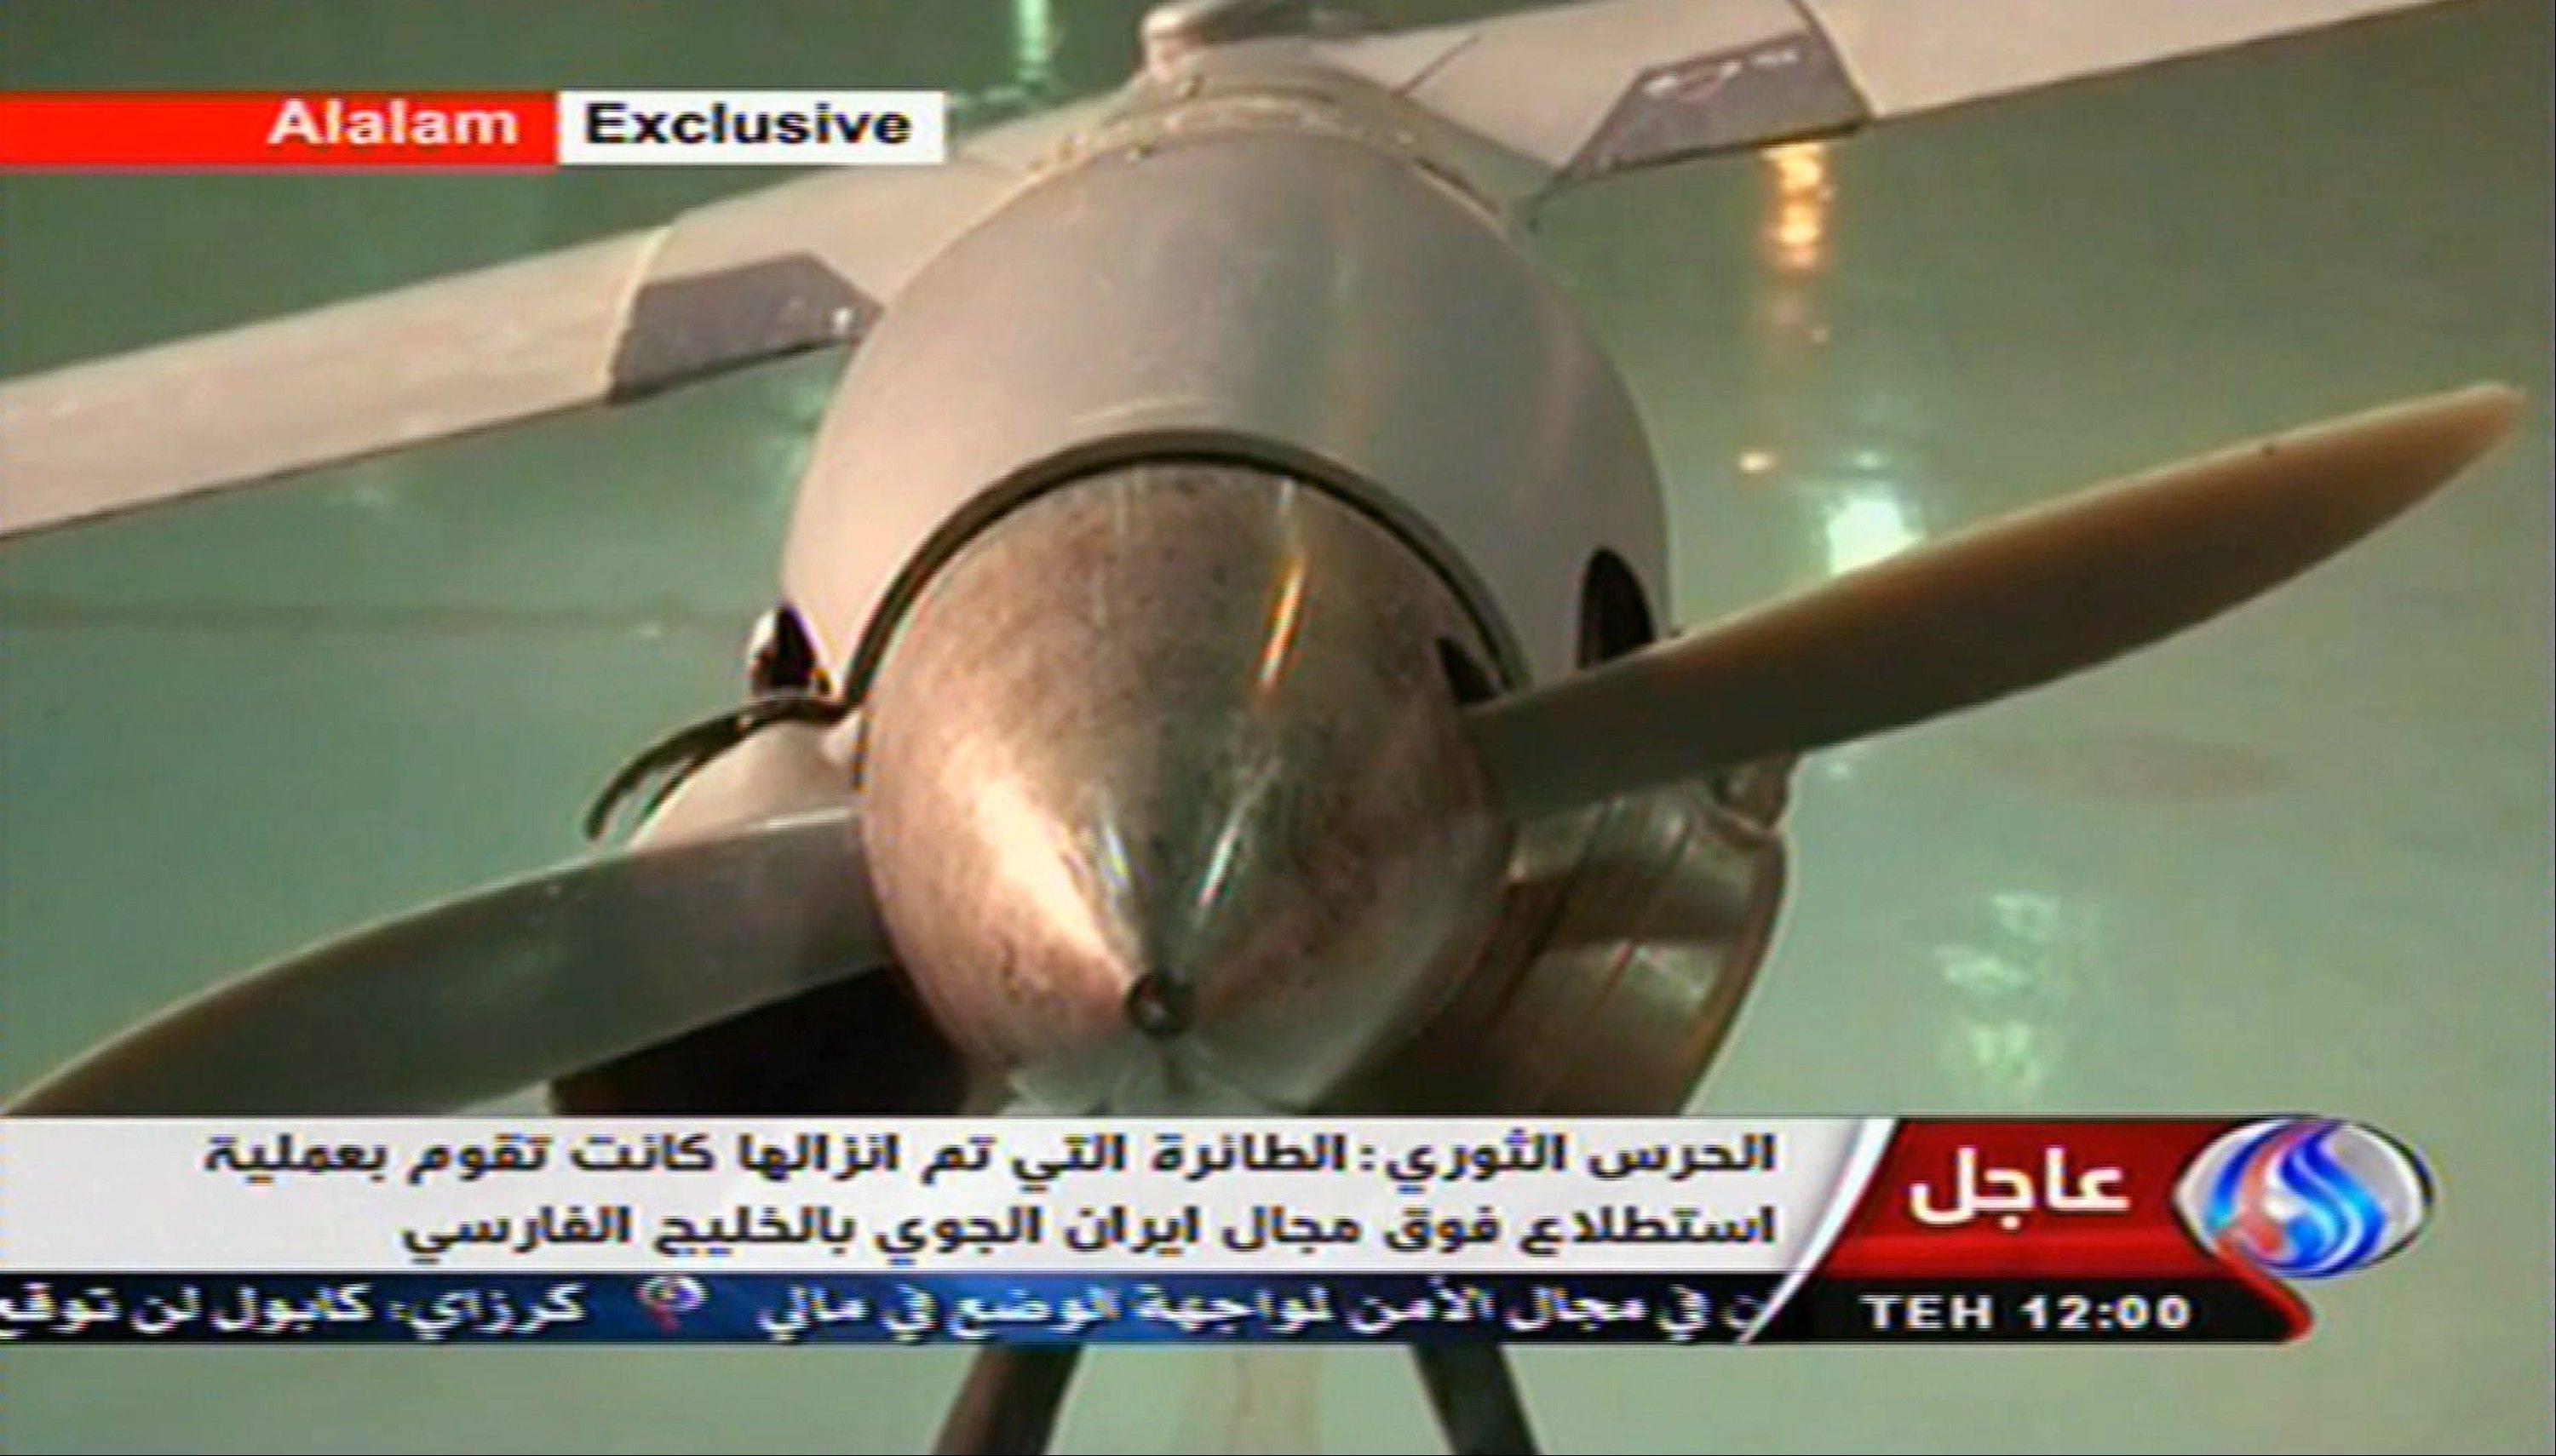 This image taken from the Iranian state TV's Arabic-language channel Al-Alam shows what they purport to be an intact ScanEagle drone aircraft put on display Tuesday. Iran claimed Tuesday it had captured a U.S. drone after it entered Iranian airspace over the Persian Gulf.